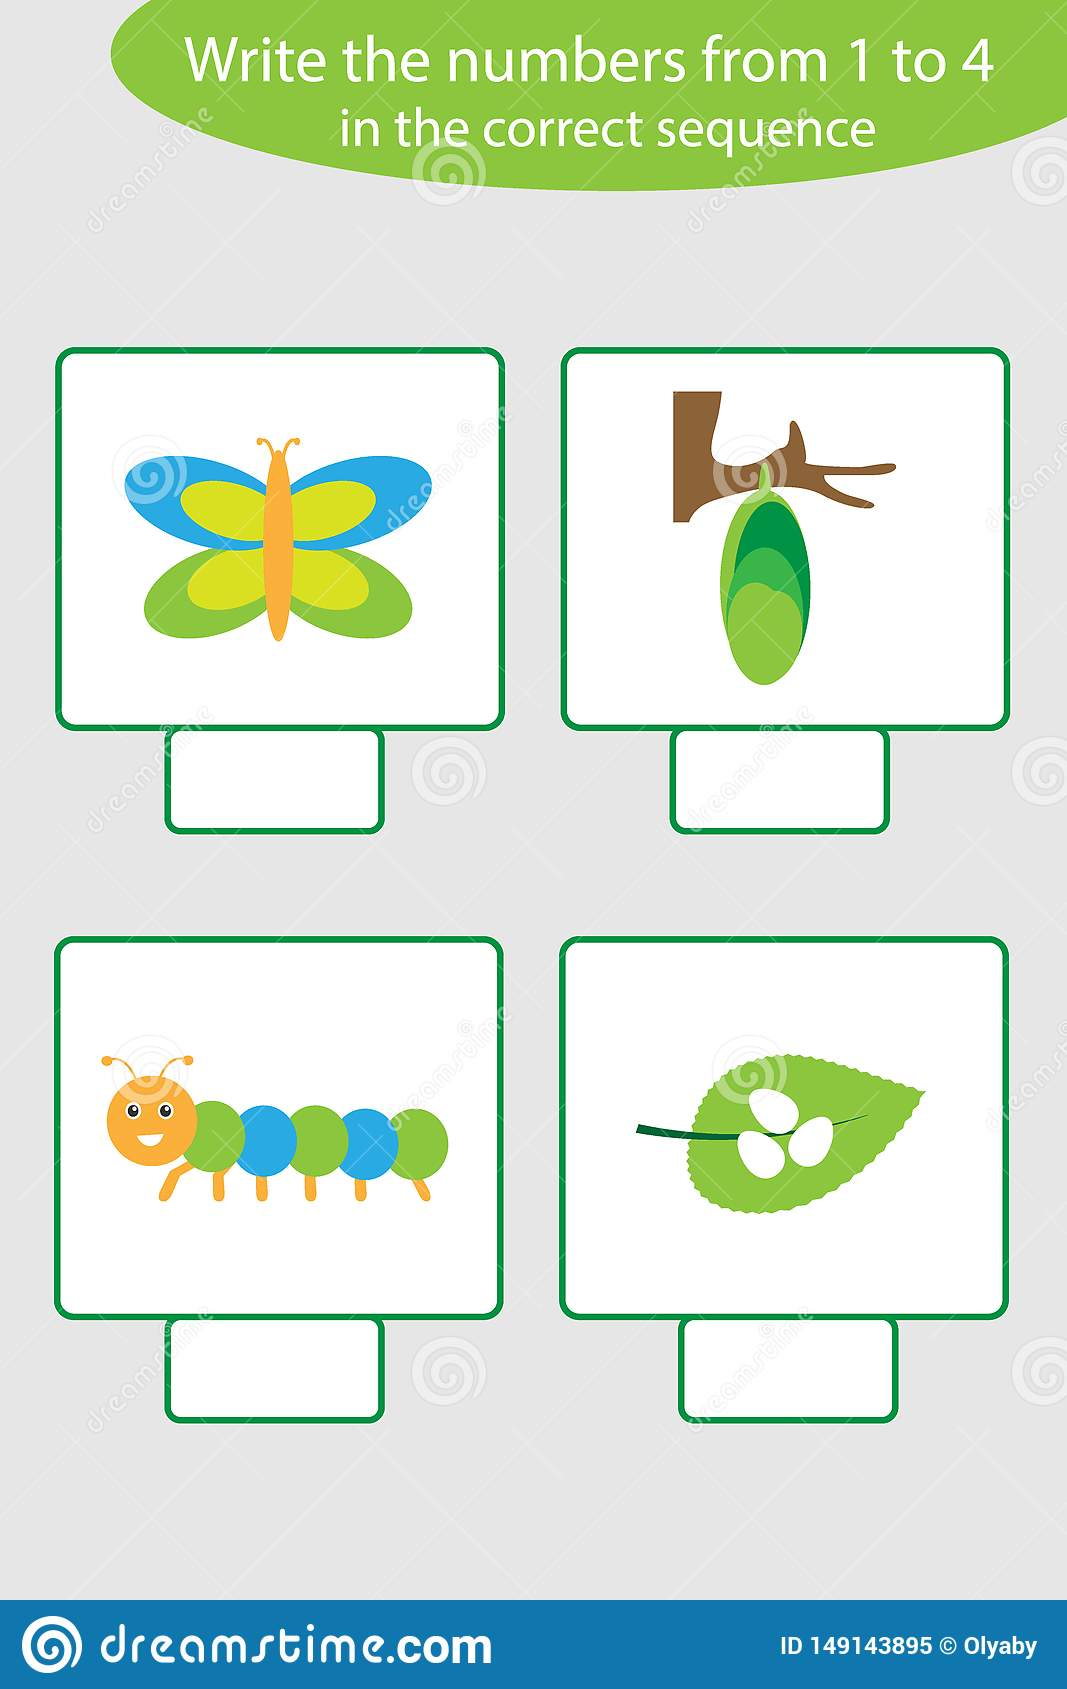 The Life Cycle Of A Butterfly Cartoon Vector